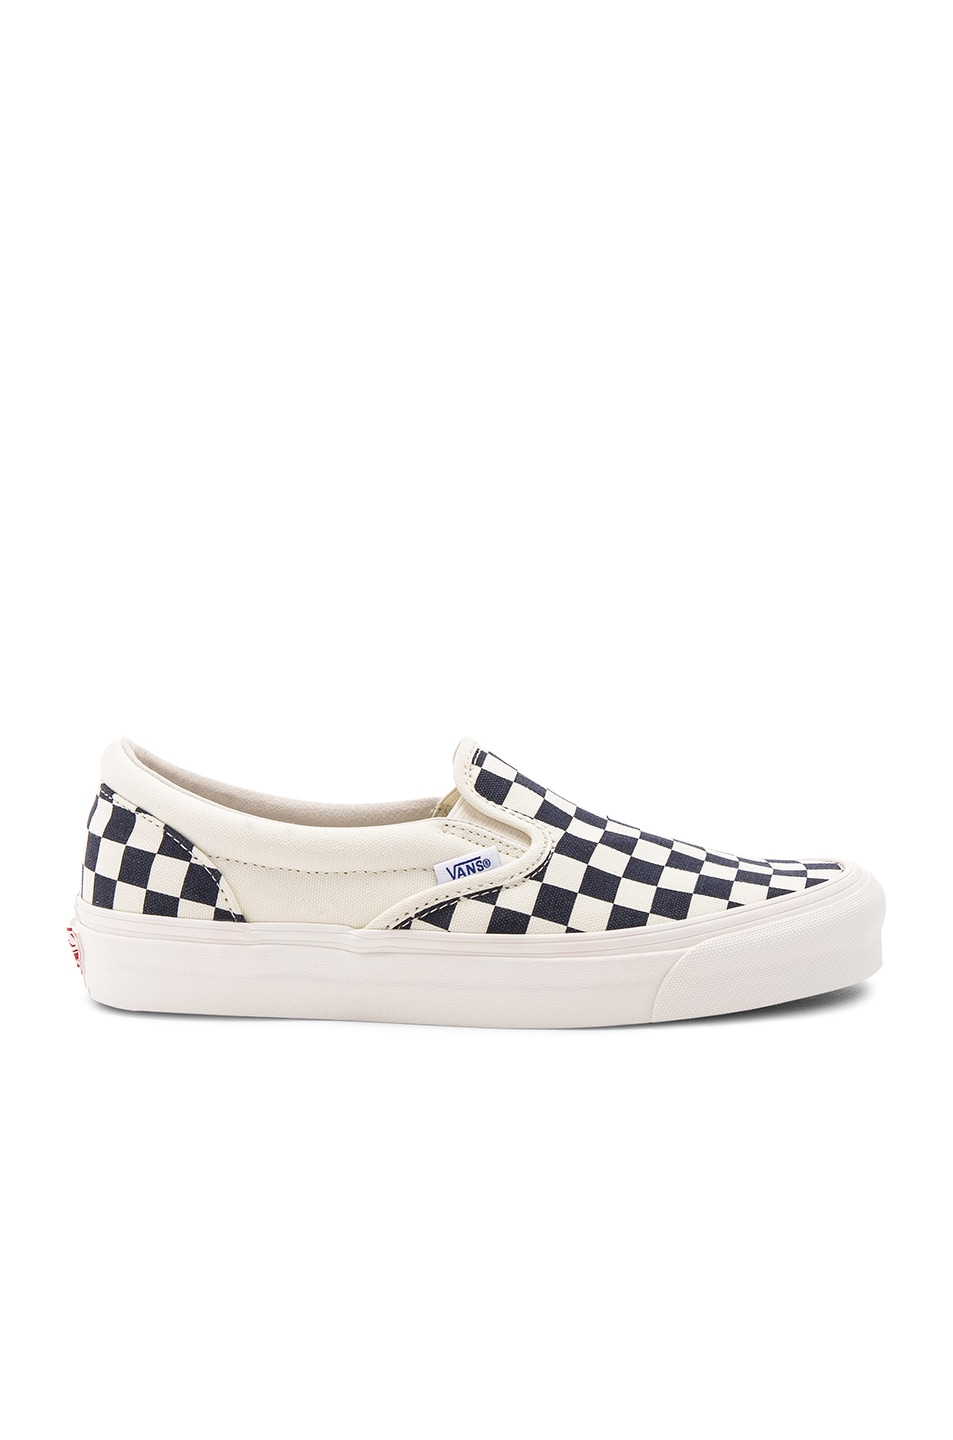 Image 1 of Vans Vault OG Classic Canvas Checkerboard Slip On LX in White & Navy